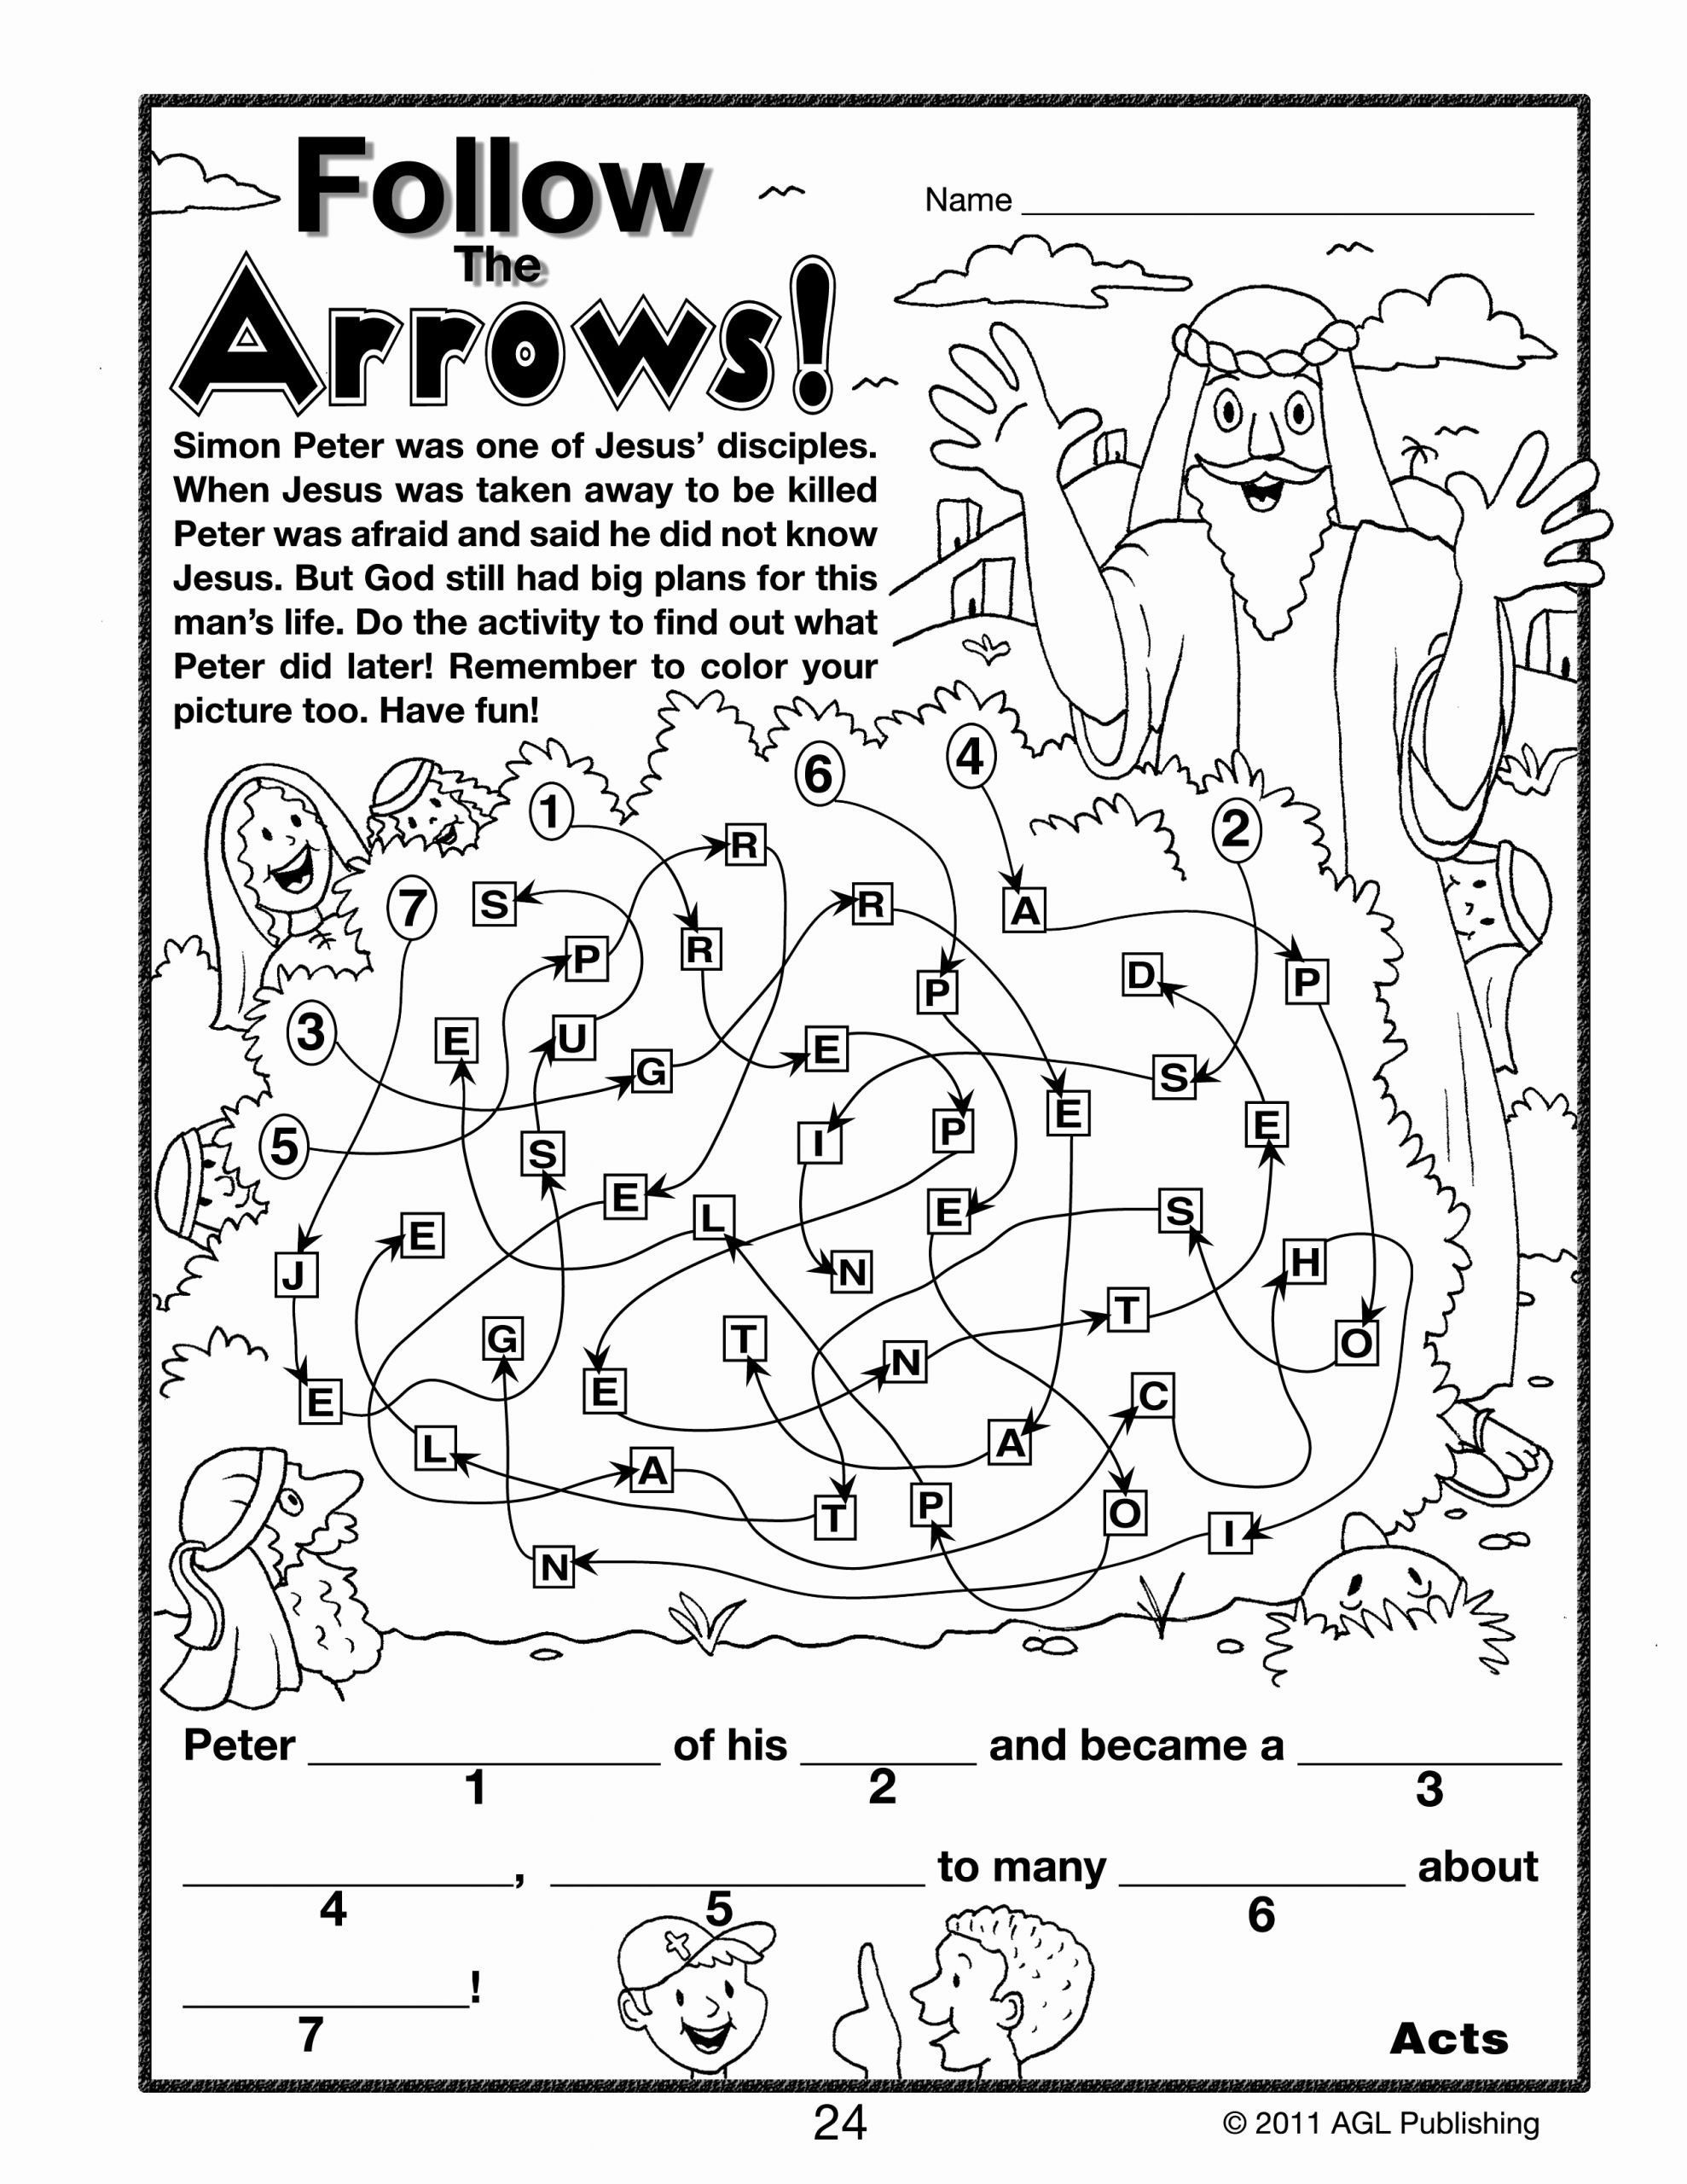 Peter And Cornelius Coloring Page : peter, cornelius, coloring, Peter, Cornelius, Coloring, Valuable, Bible, Tools, Activities, Grades, Pages,, Transformers, Pages